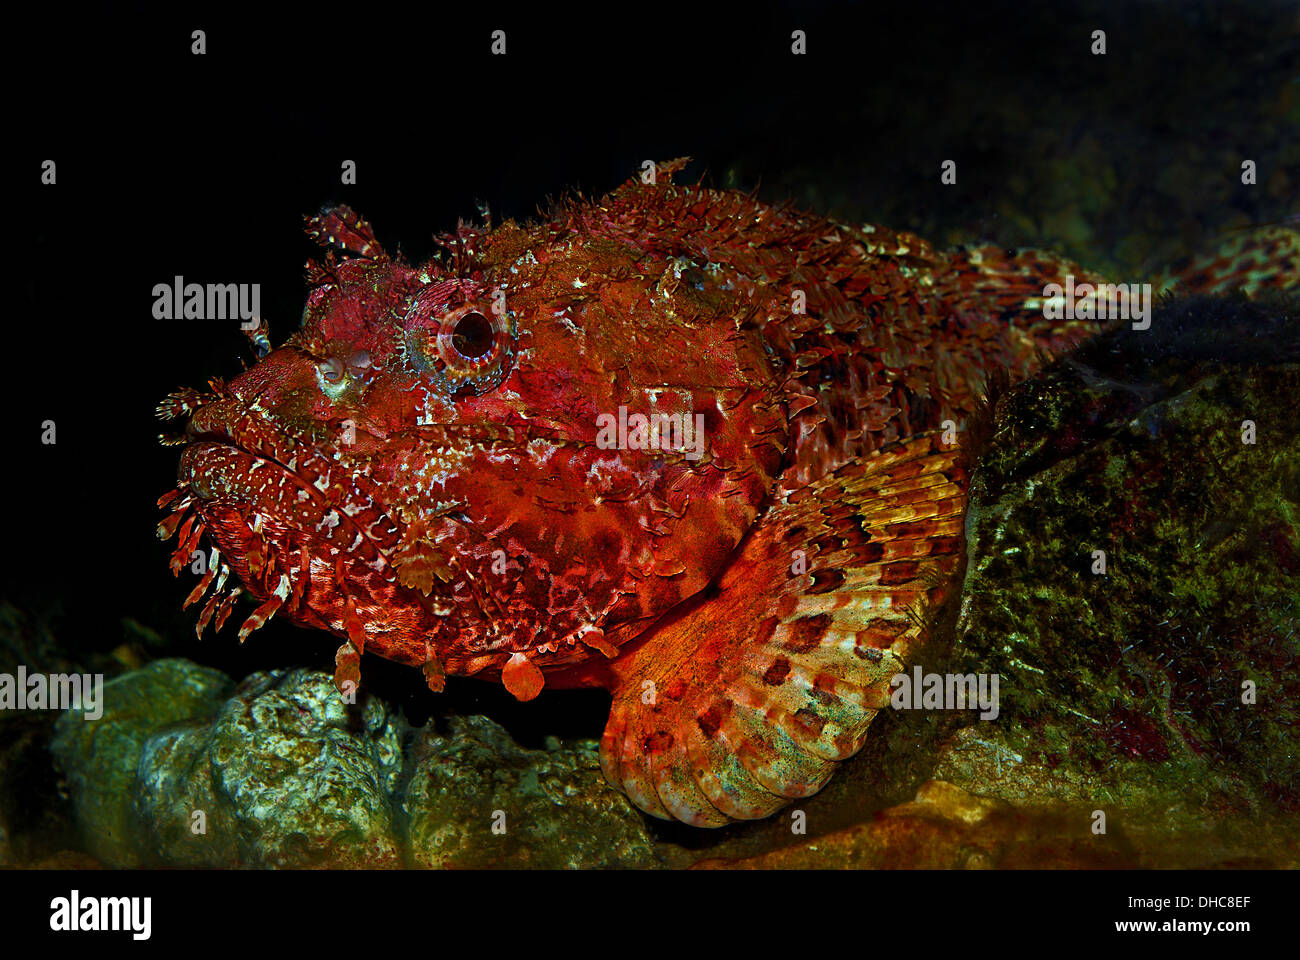 Red Spotted Fish Stock Photos & Red Spotted Fish Stock Images - Alamy